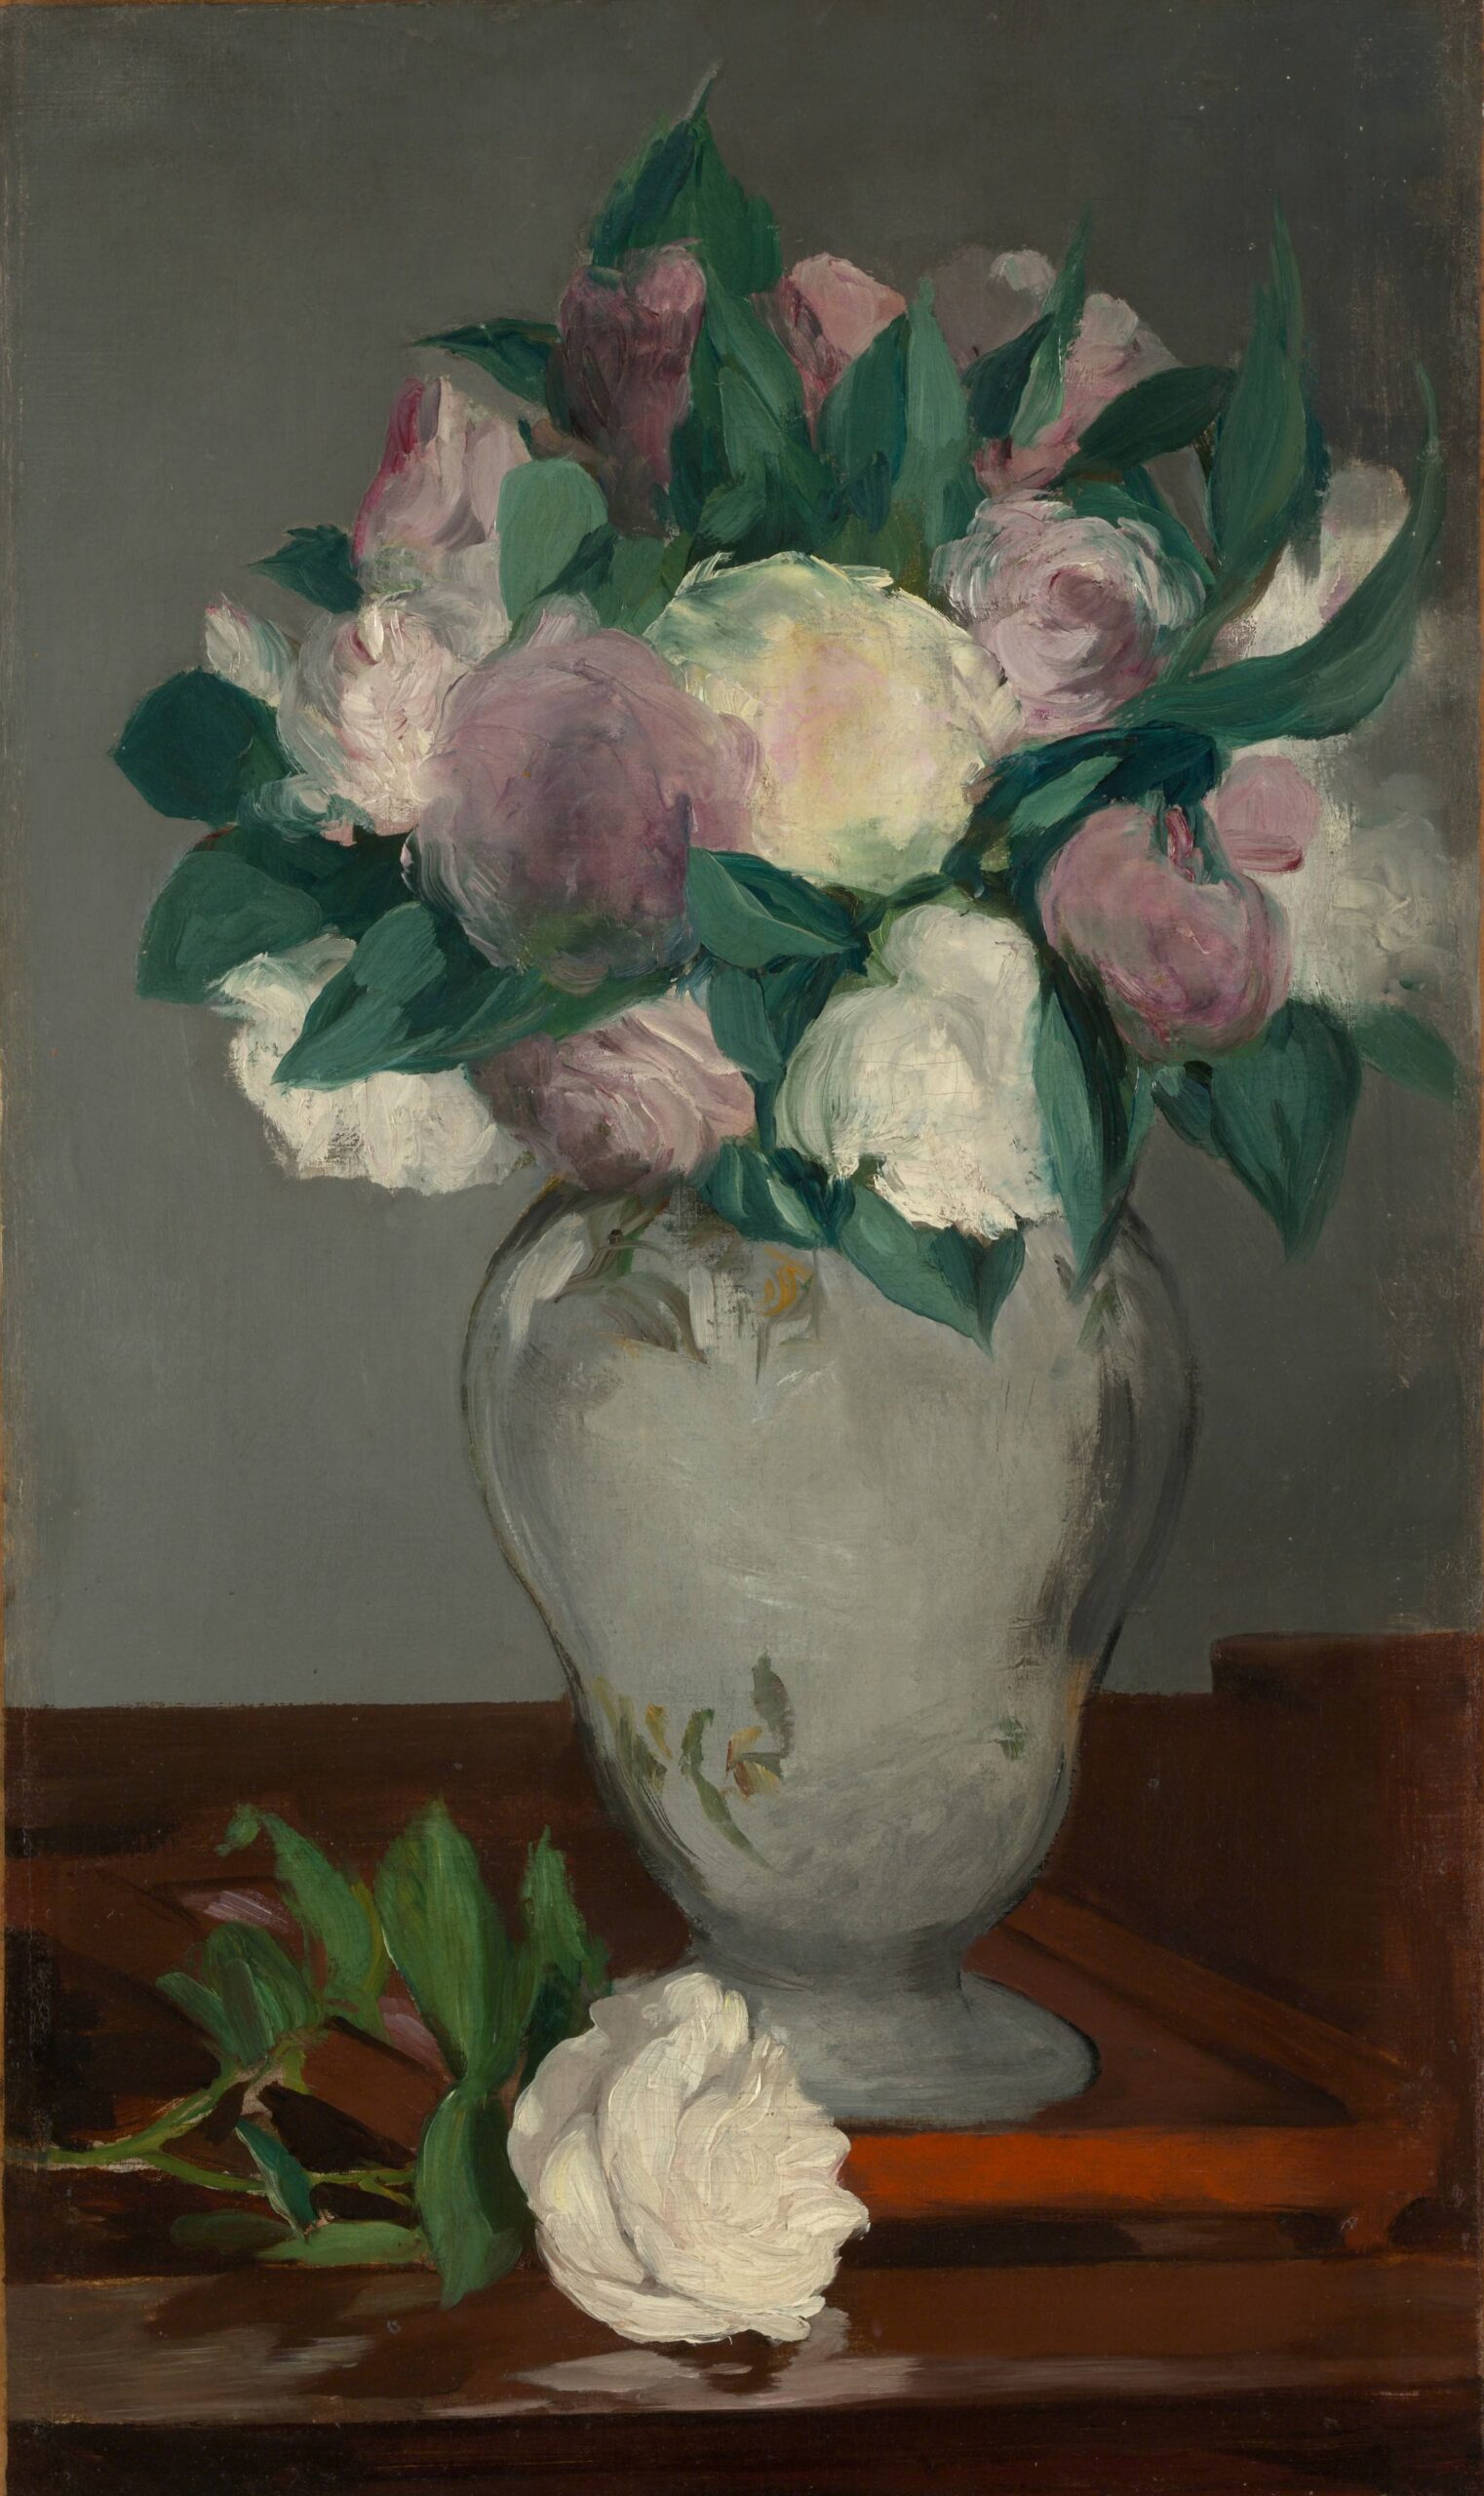 Édouard Manet (French, 1832–1883), Peonies, 1864–65. Oil on canvas, 23 3/8 × 13 7⁄8 in. The Metropolitan Museum of Art, Bequest of Joan Whitney Payson, 1975, 1976.201.16.